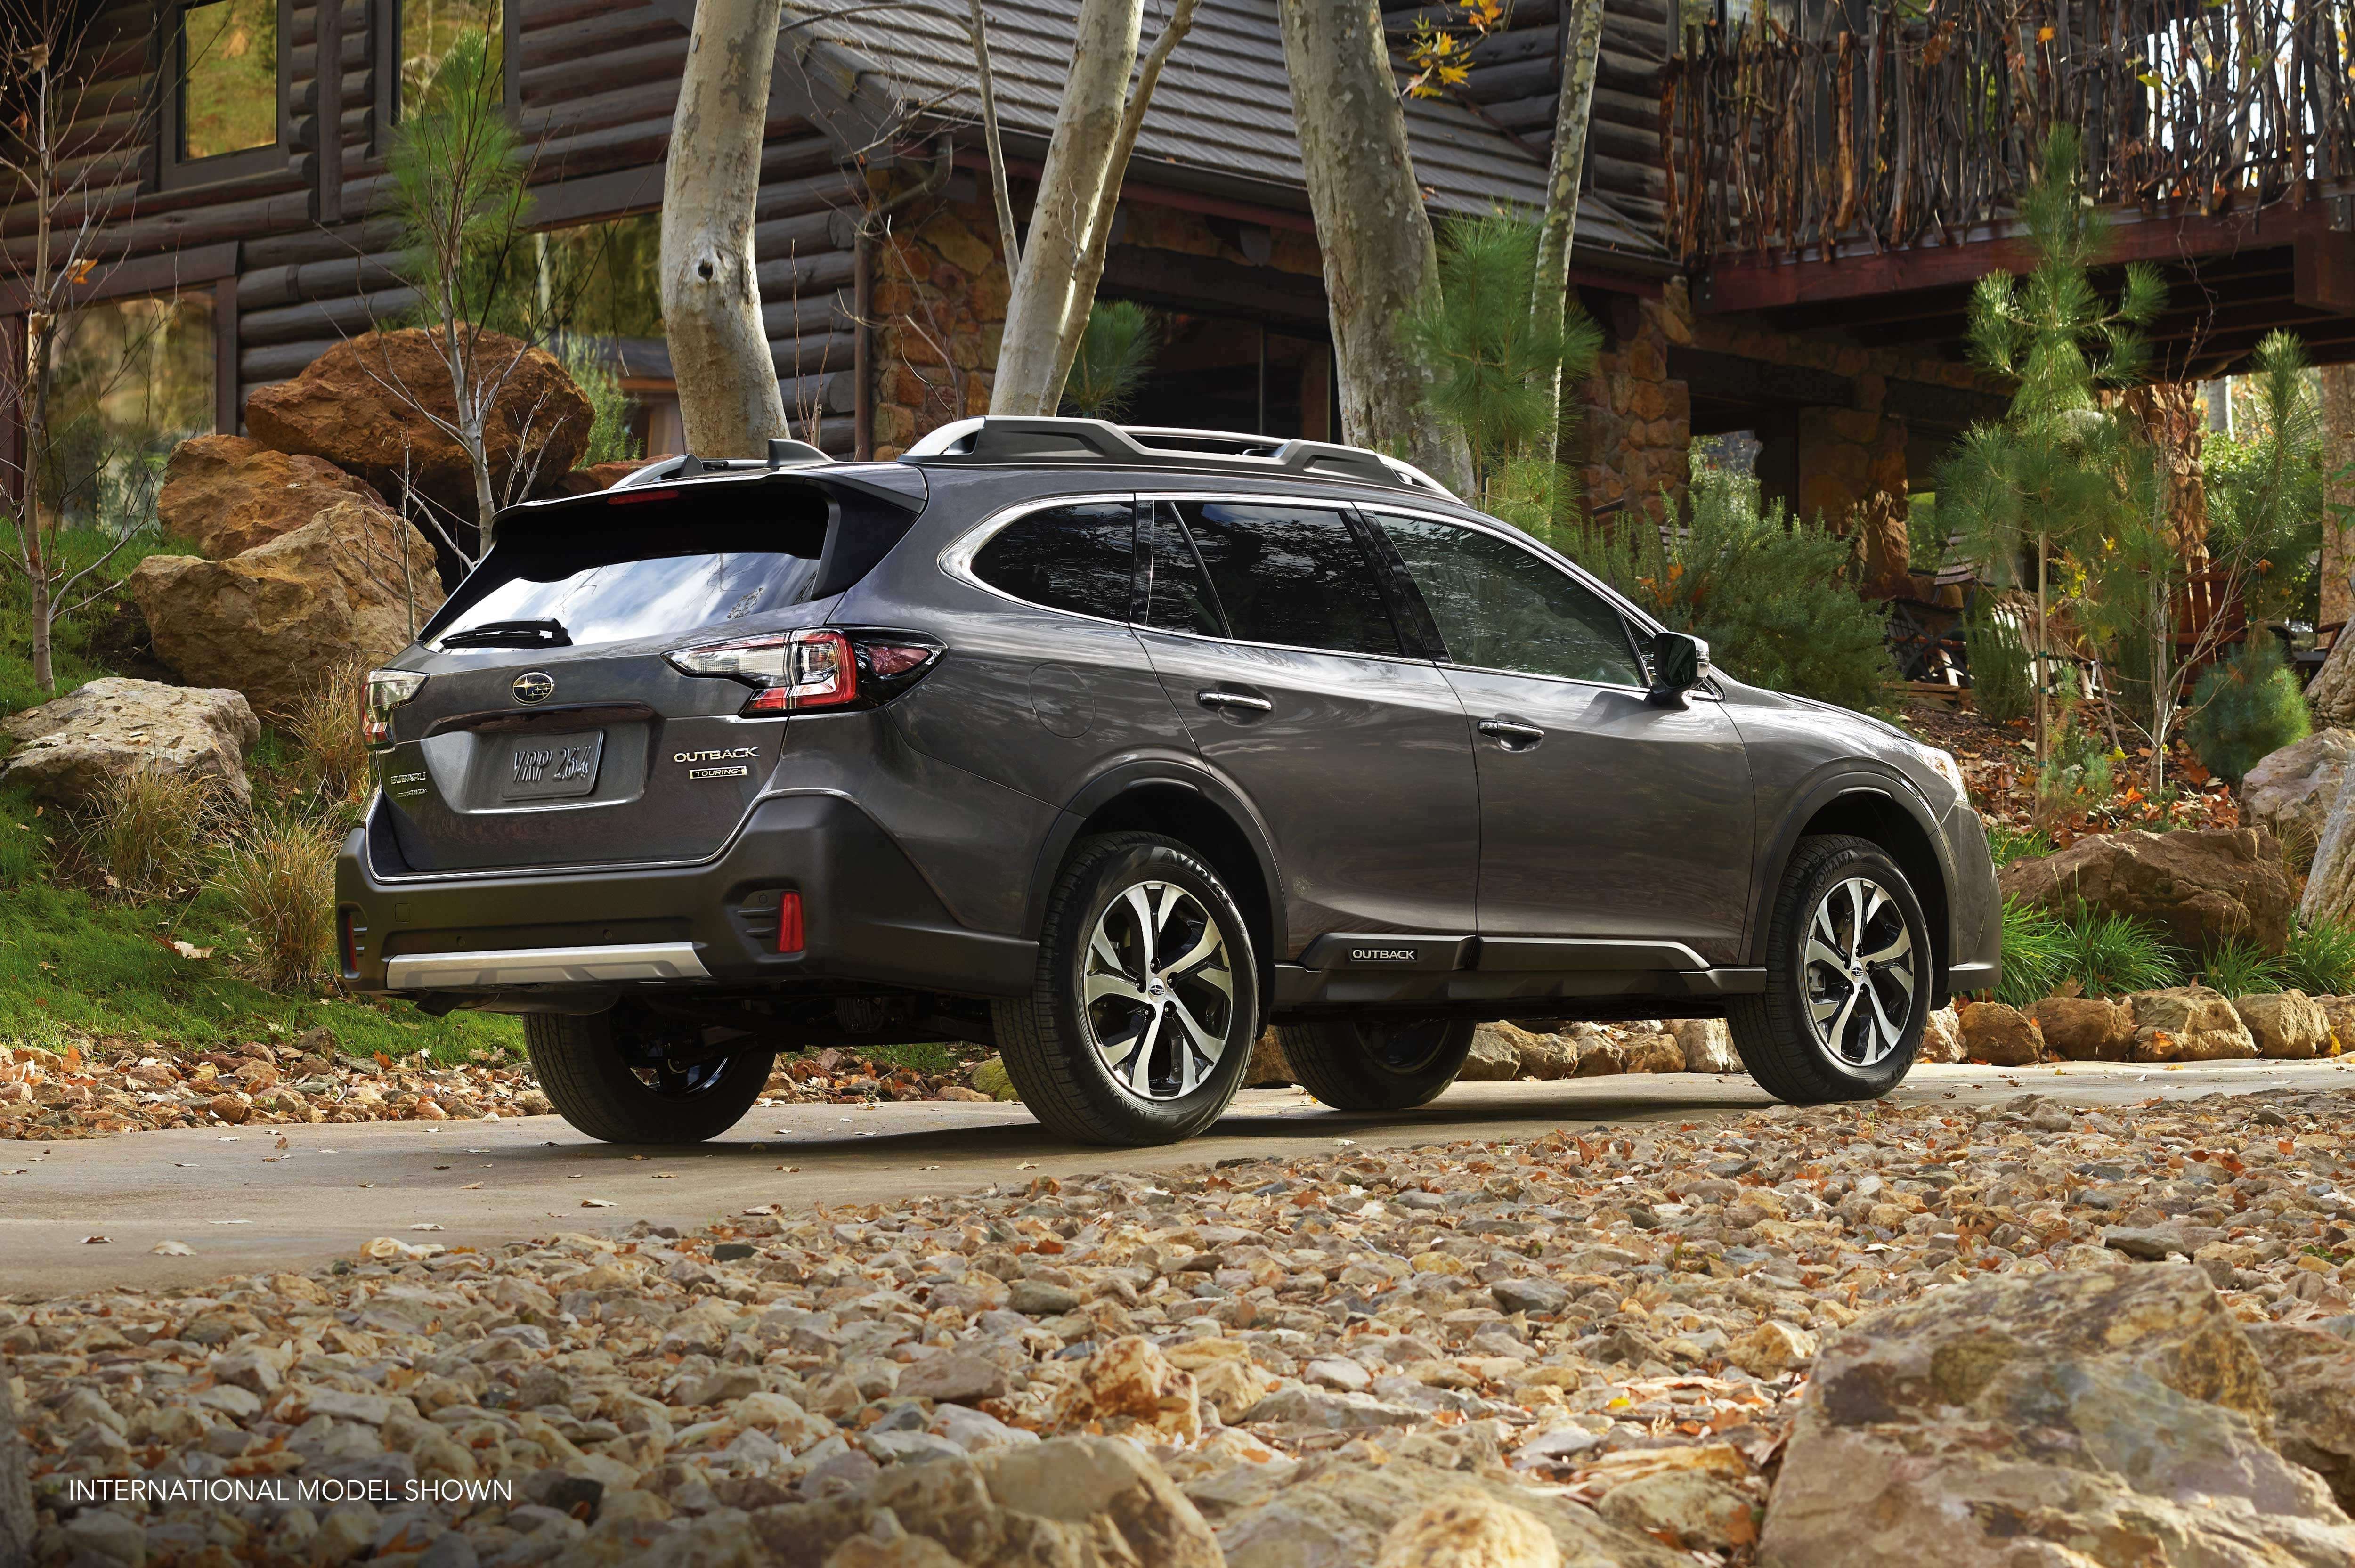 76 New 2020 Subaru Outback Photos Research New